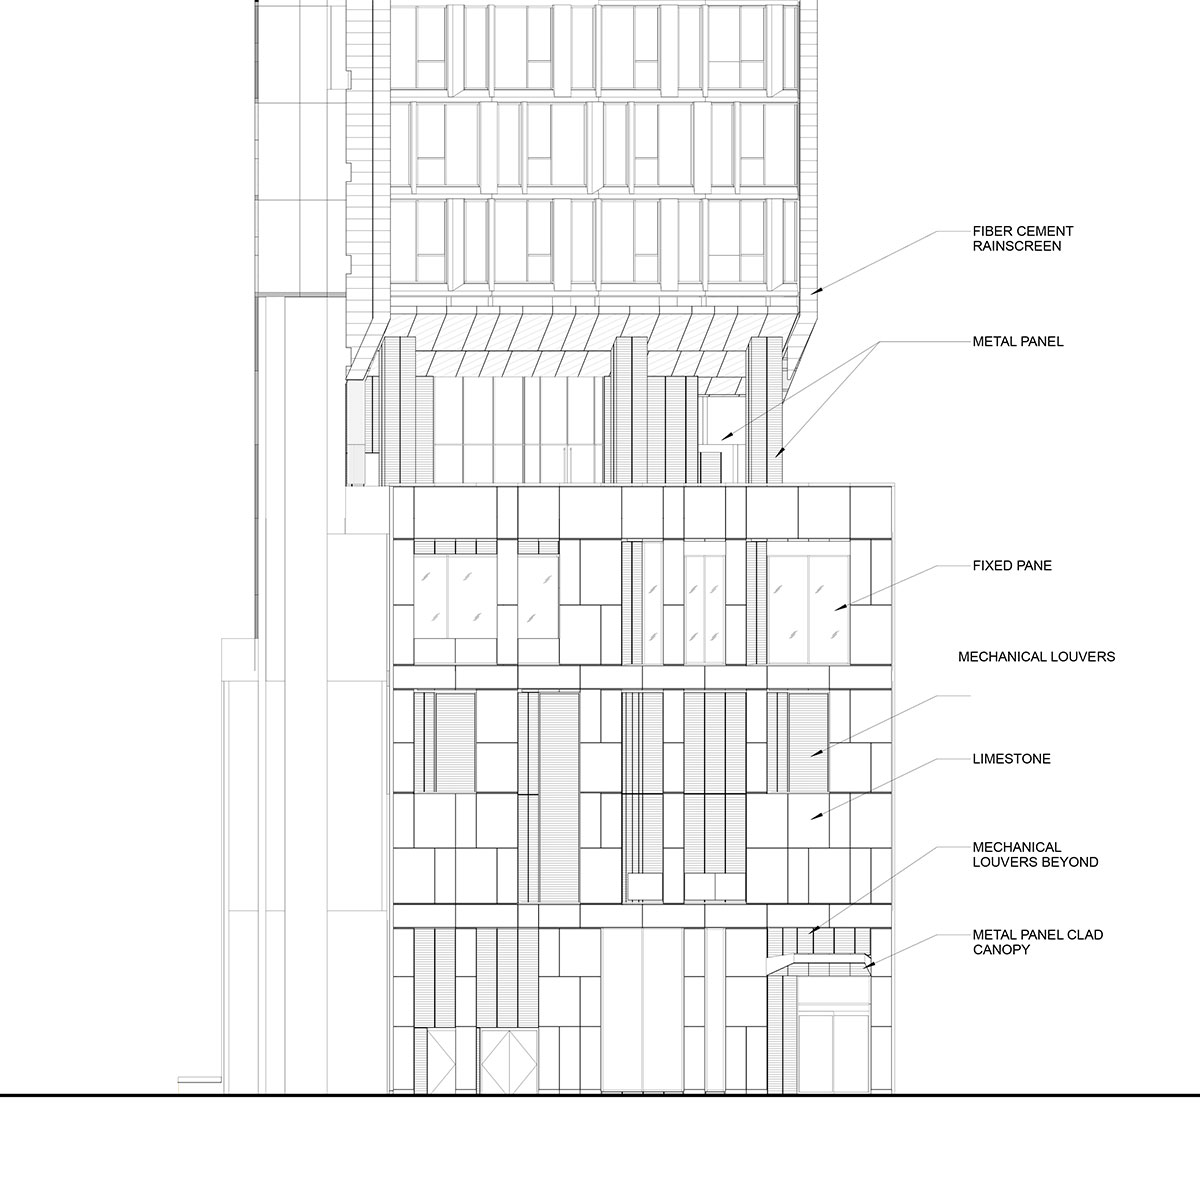 West facade elevation view of the Modular AC Hotel project located at 842 Sixth Avenue in NoMad, New York City designed by the architecture studio Danny Forster & Architecture